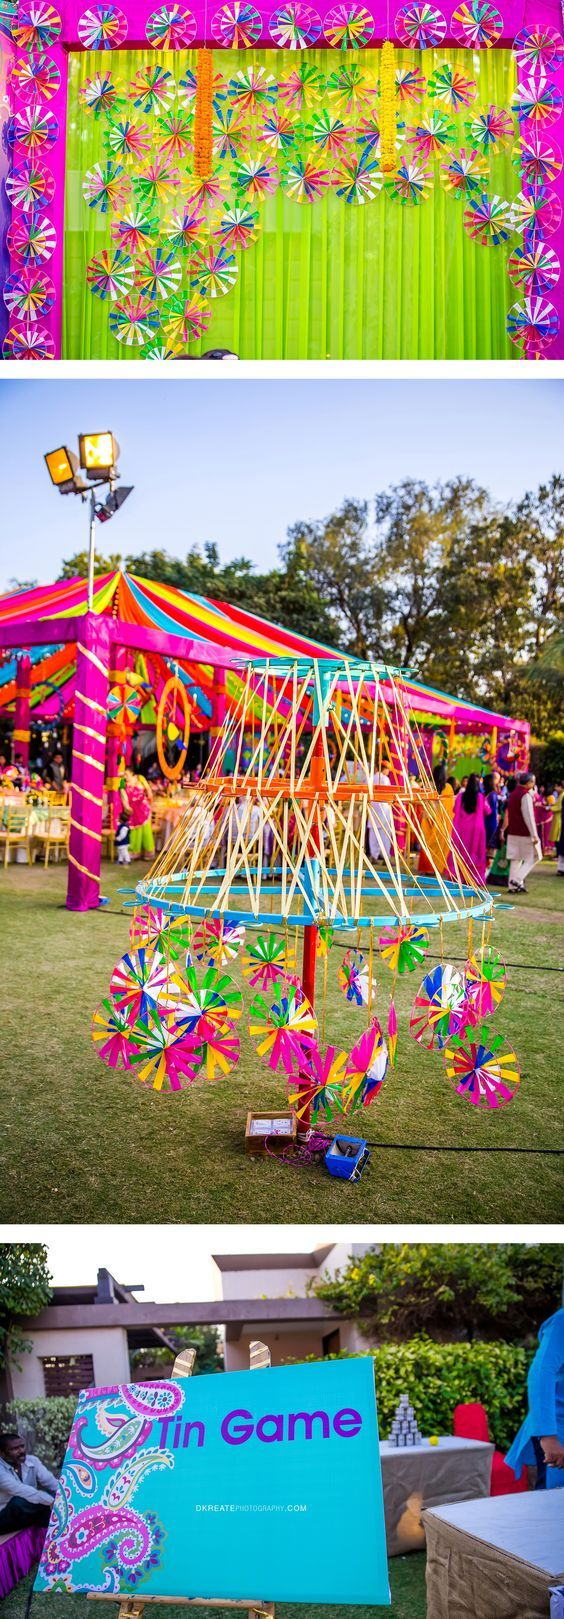 Wedding stage decoration ideas kerala  The  best images about Decoration ideas on Pinterest